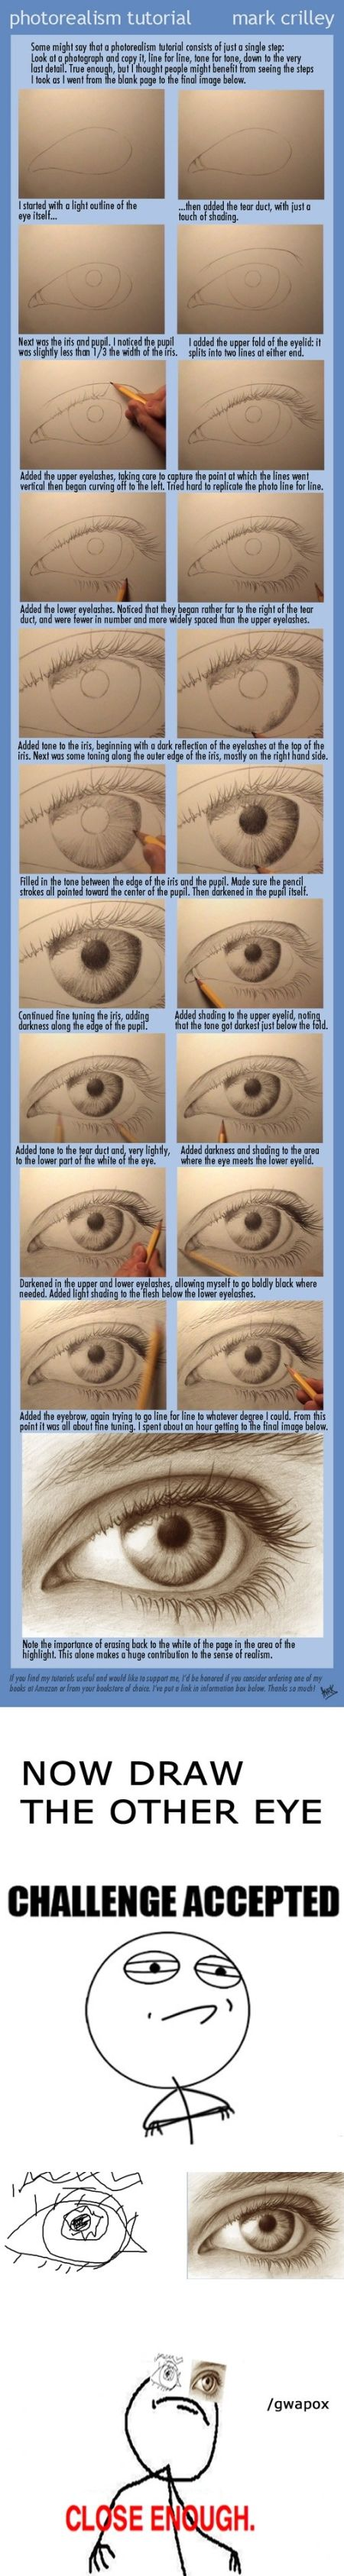 How to draw an eye at PMSLweb.com